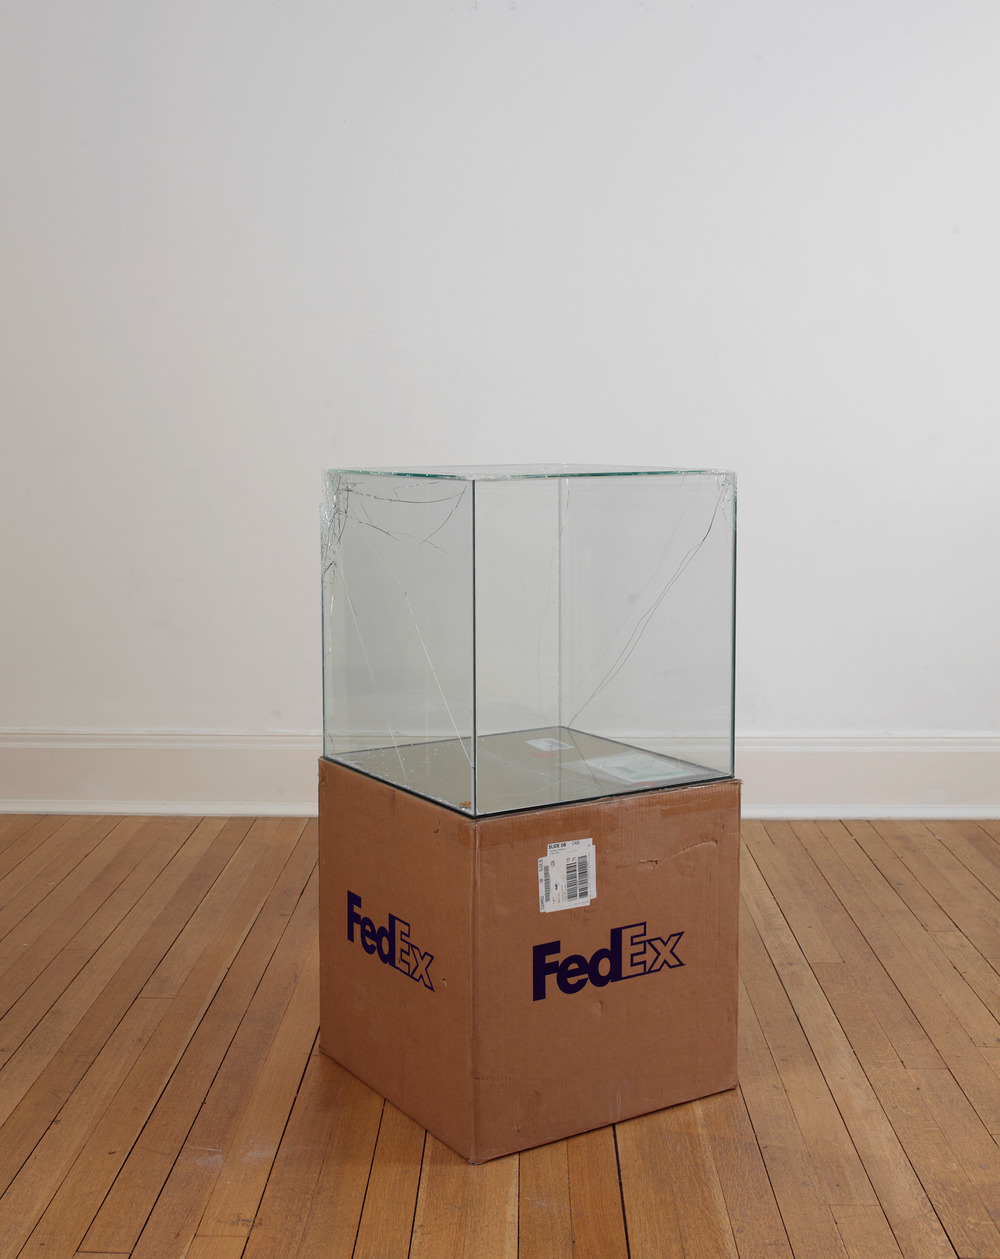 FedEx Large Kraft Box 2008 FEDEX 330510 REV 6/08 GP, International Priority, Los Angeles–London trk#868587728050, October 02–05, 2009    2009–   Laminated glass, FedEx shipping box, accrued FedEx shipping and tracking labels, silicone, metal, tape  24 x 24 x 24 inches   FedEx Glass Works, 2007–